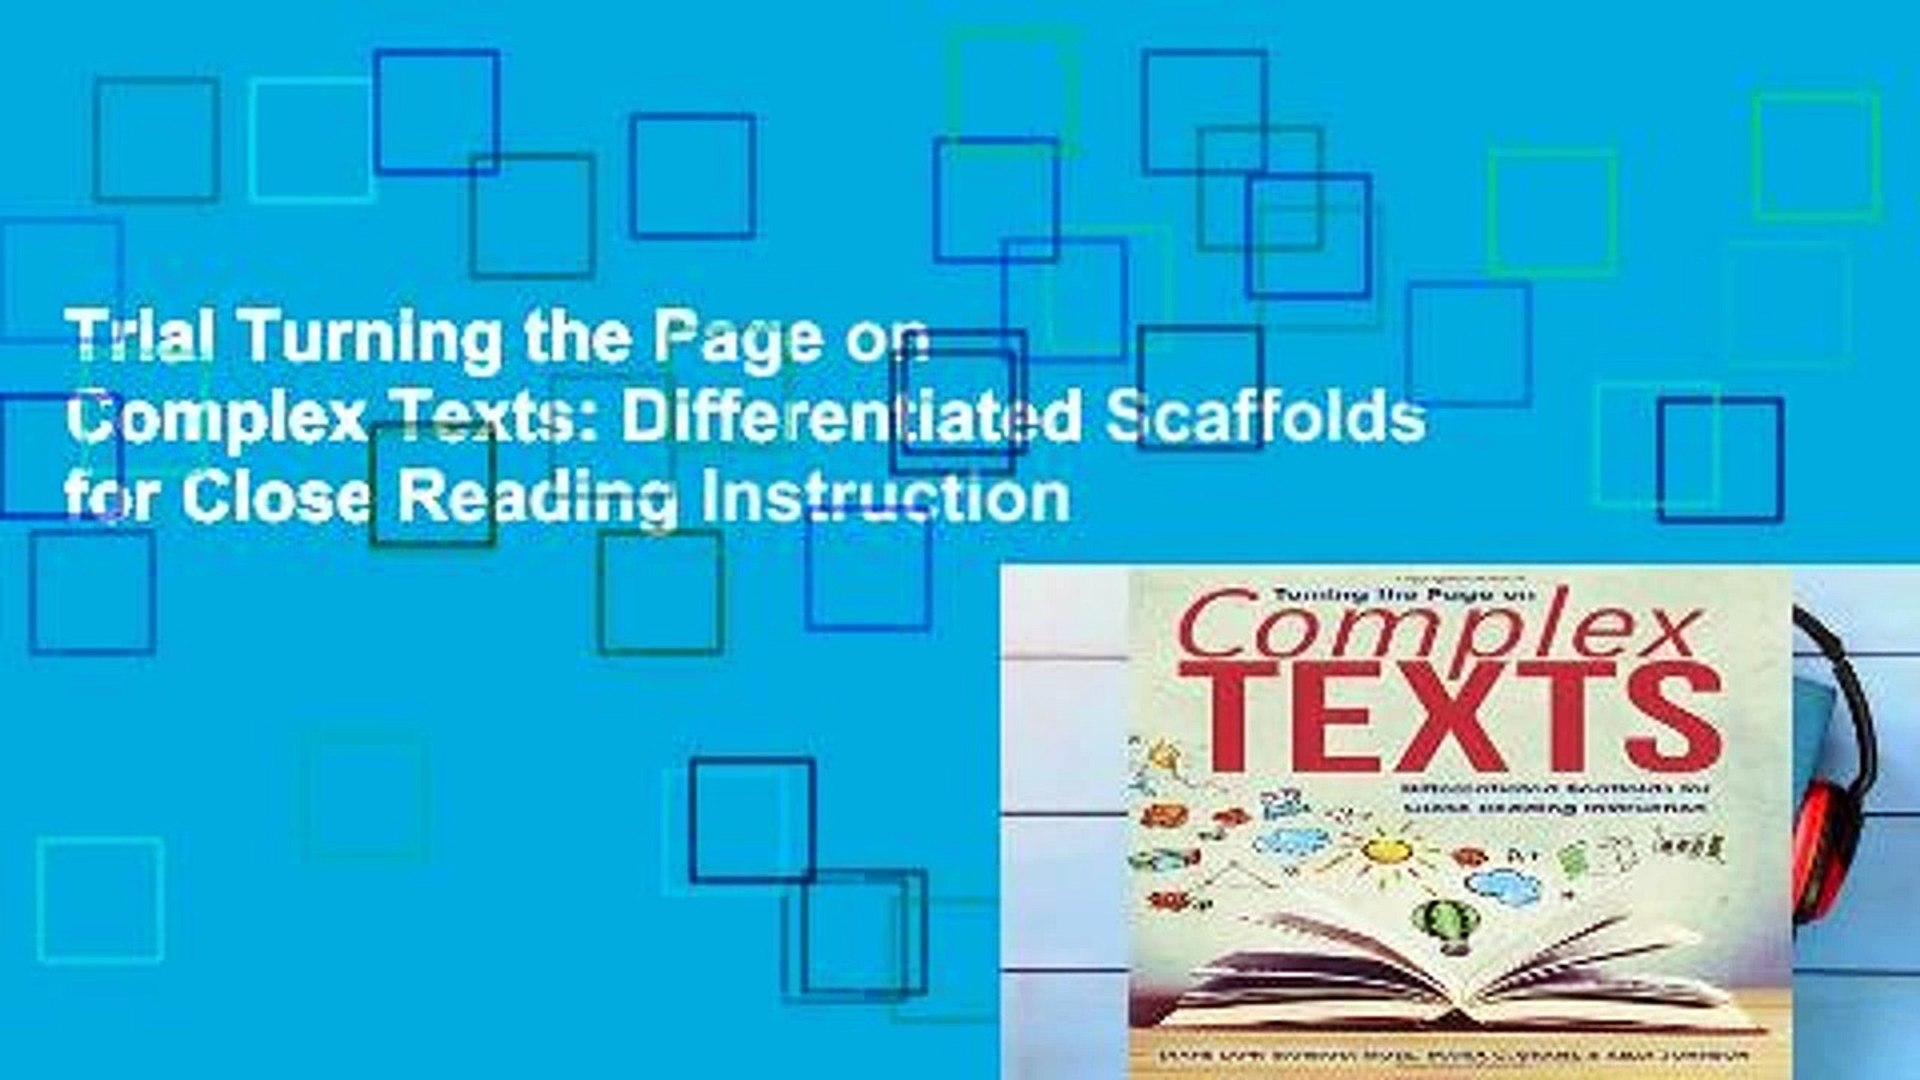 Trial Turning the Page on Complex Texts: Differentiated Scaffolds for Close Reading Instruction